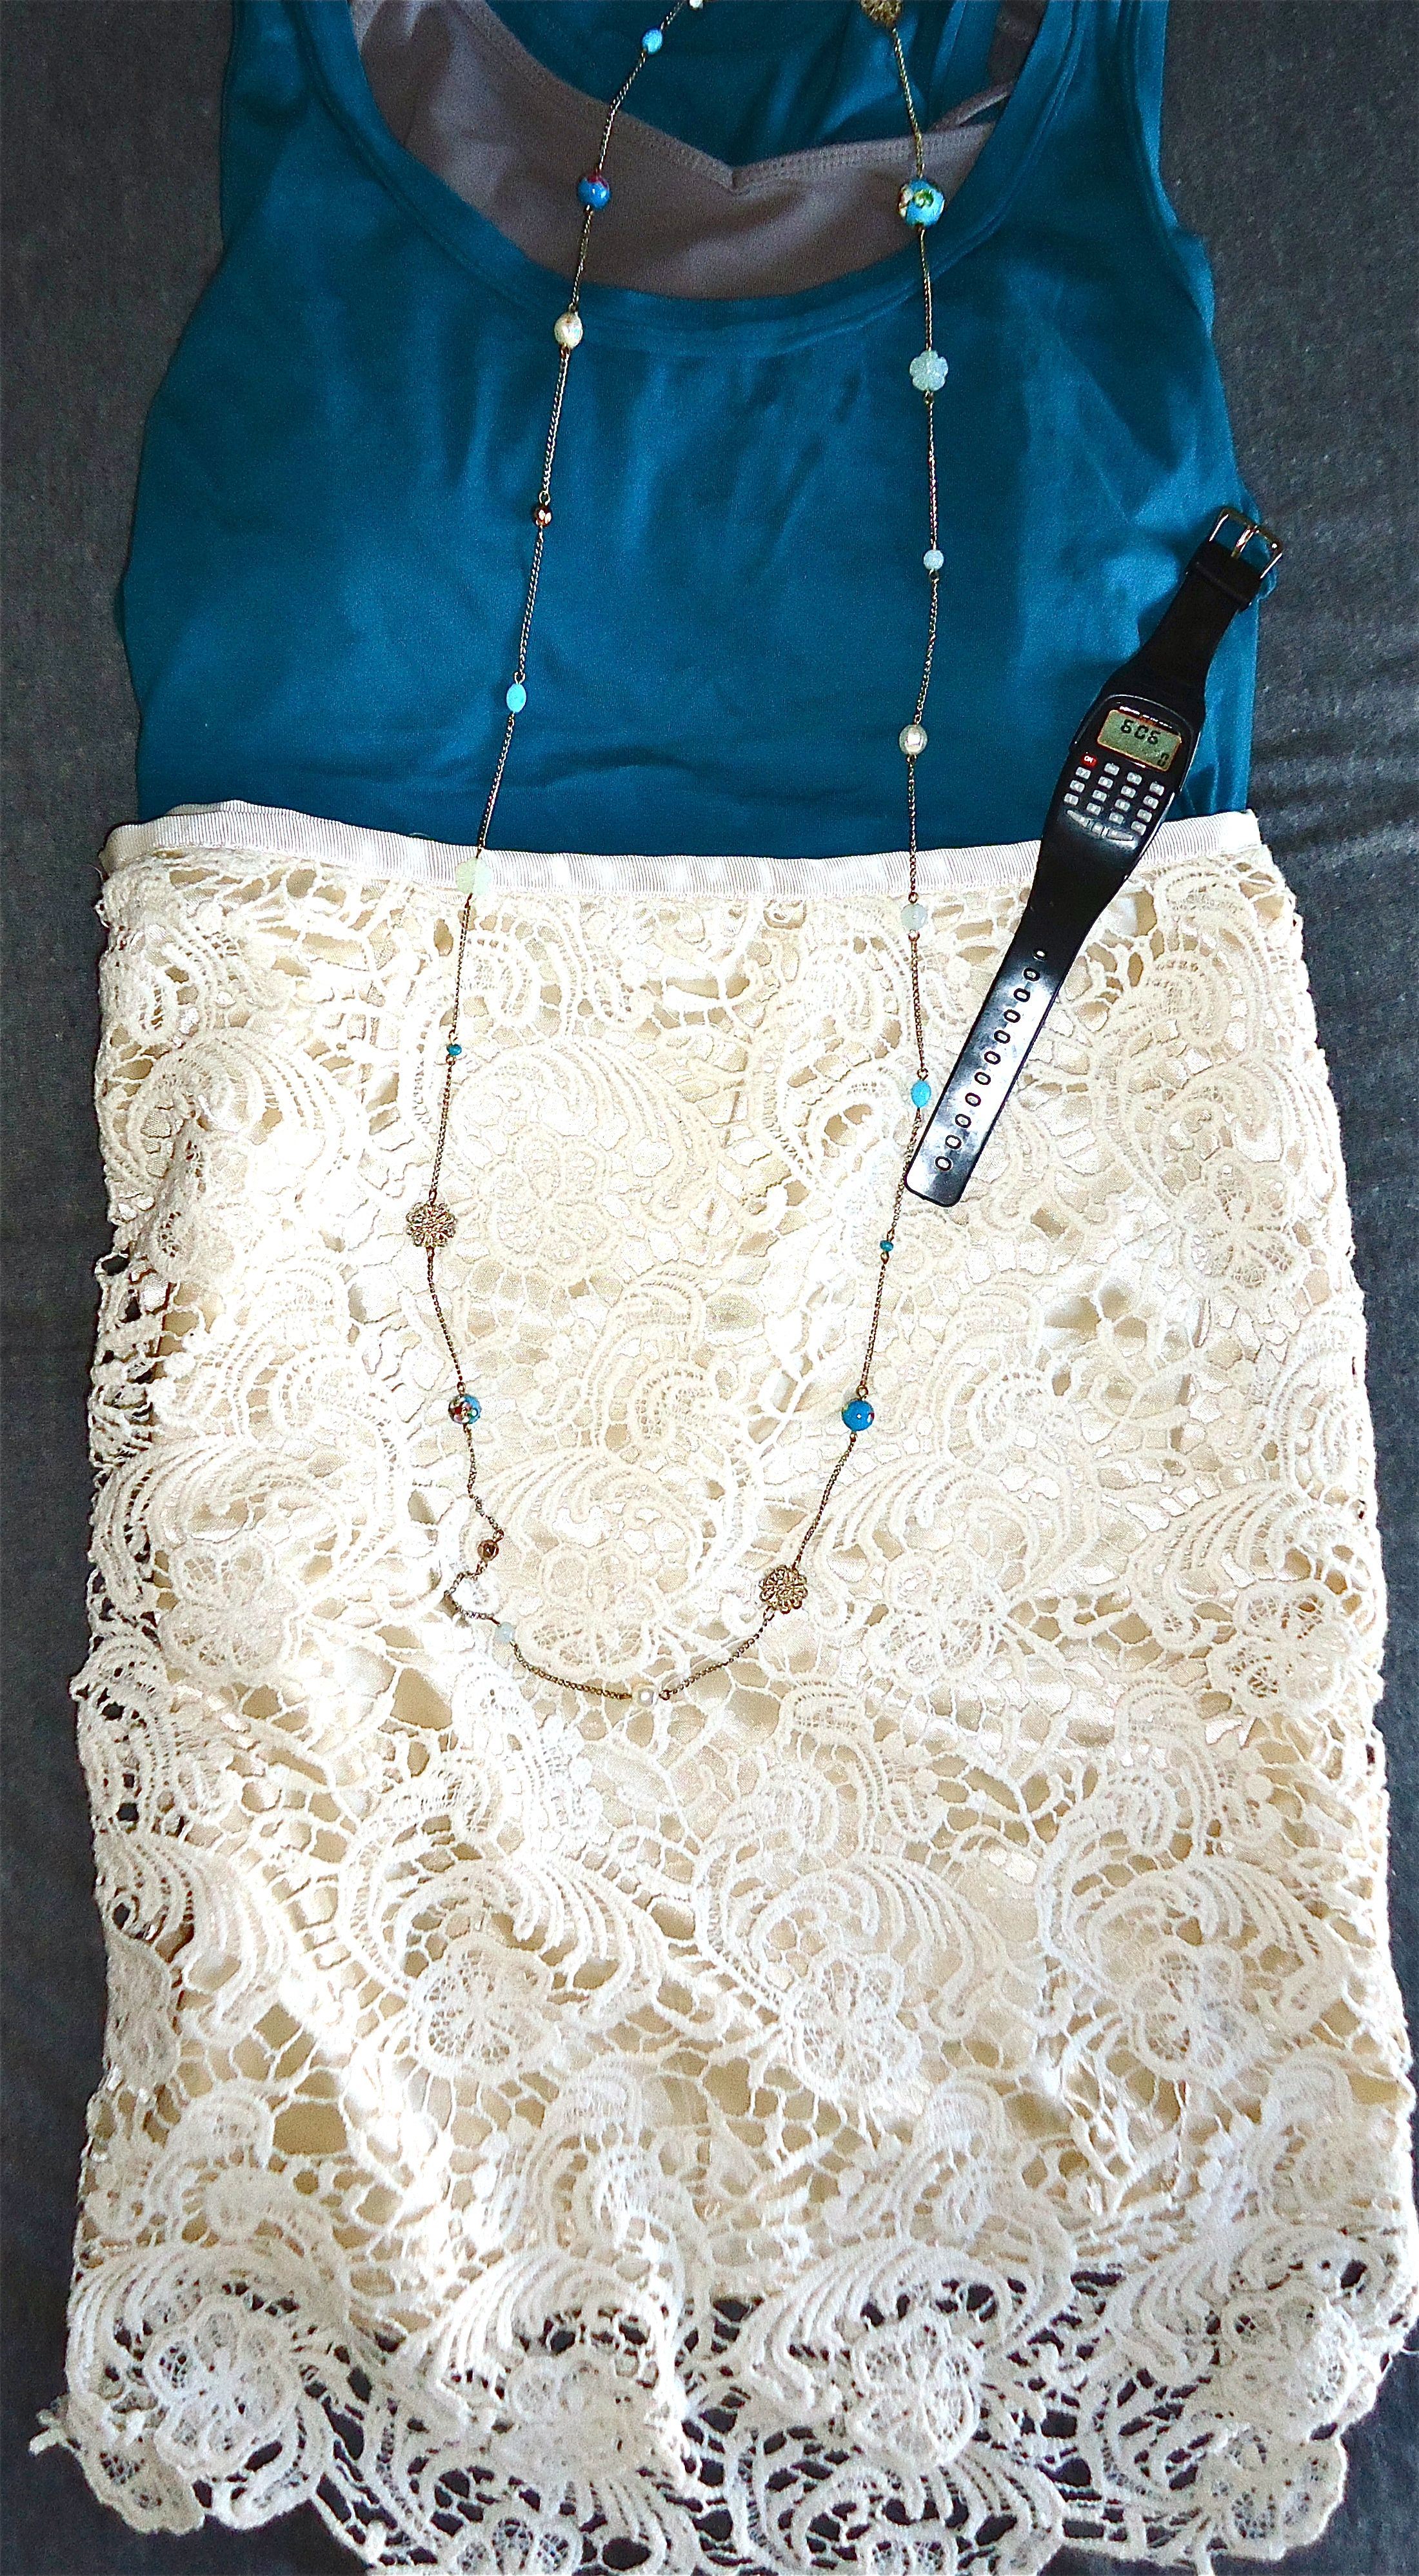 Pencil embroidered skirt, Blue tank top, long necklace, and a bit of funkiness with the calculator watch.   Xoxo w/Fashion